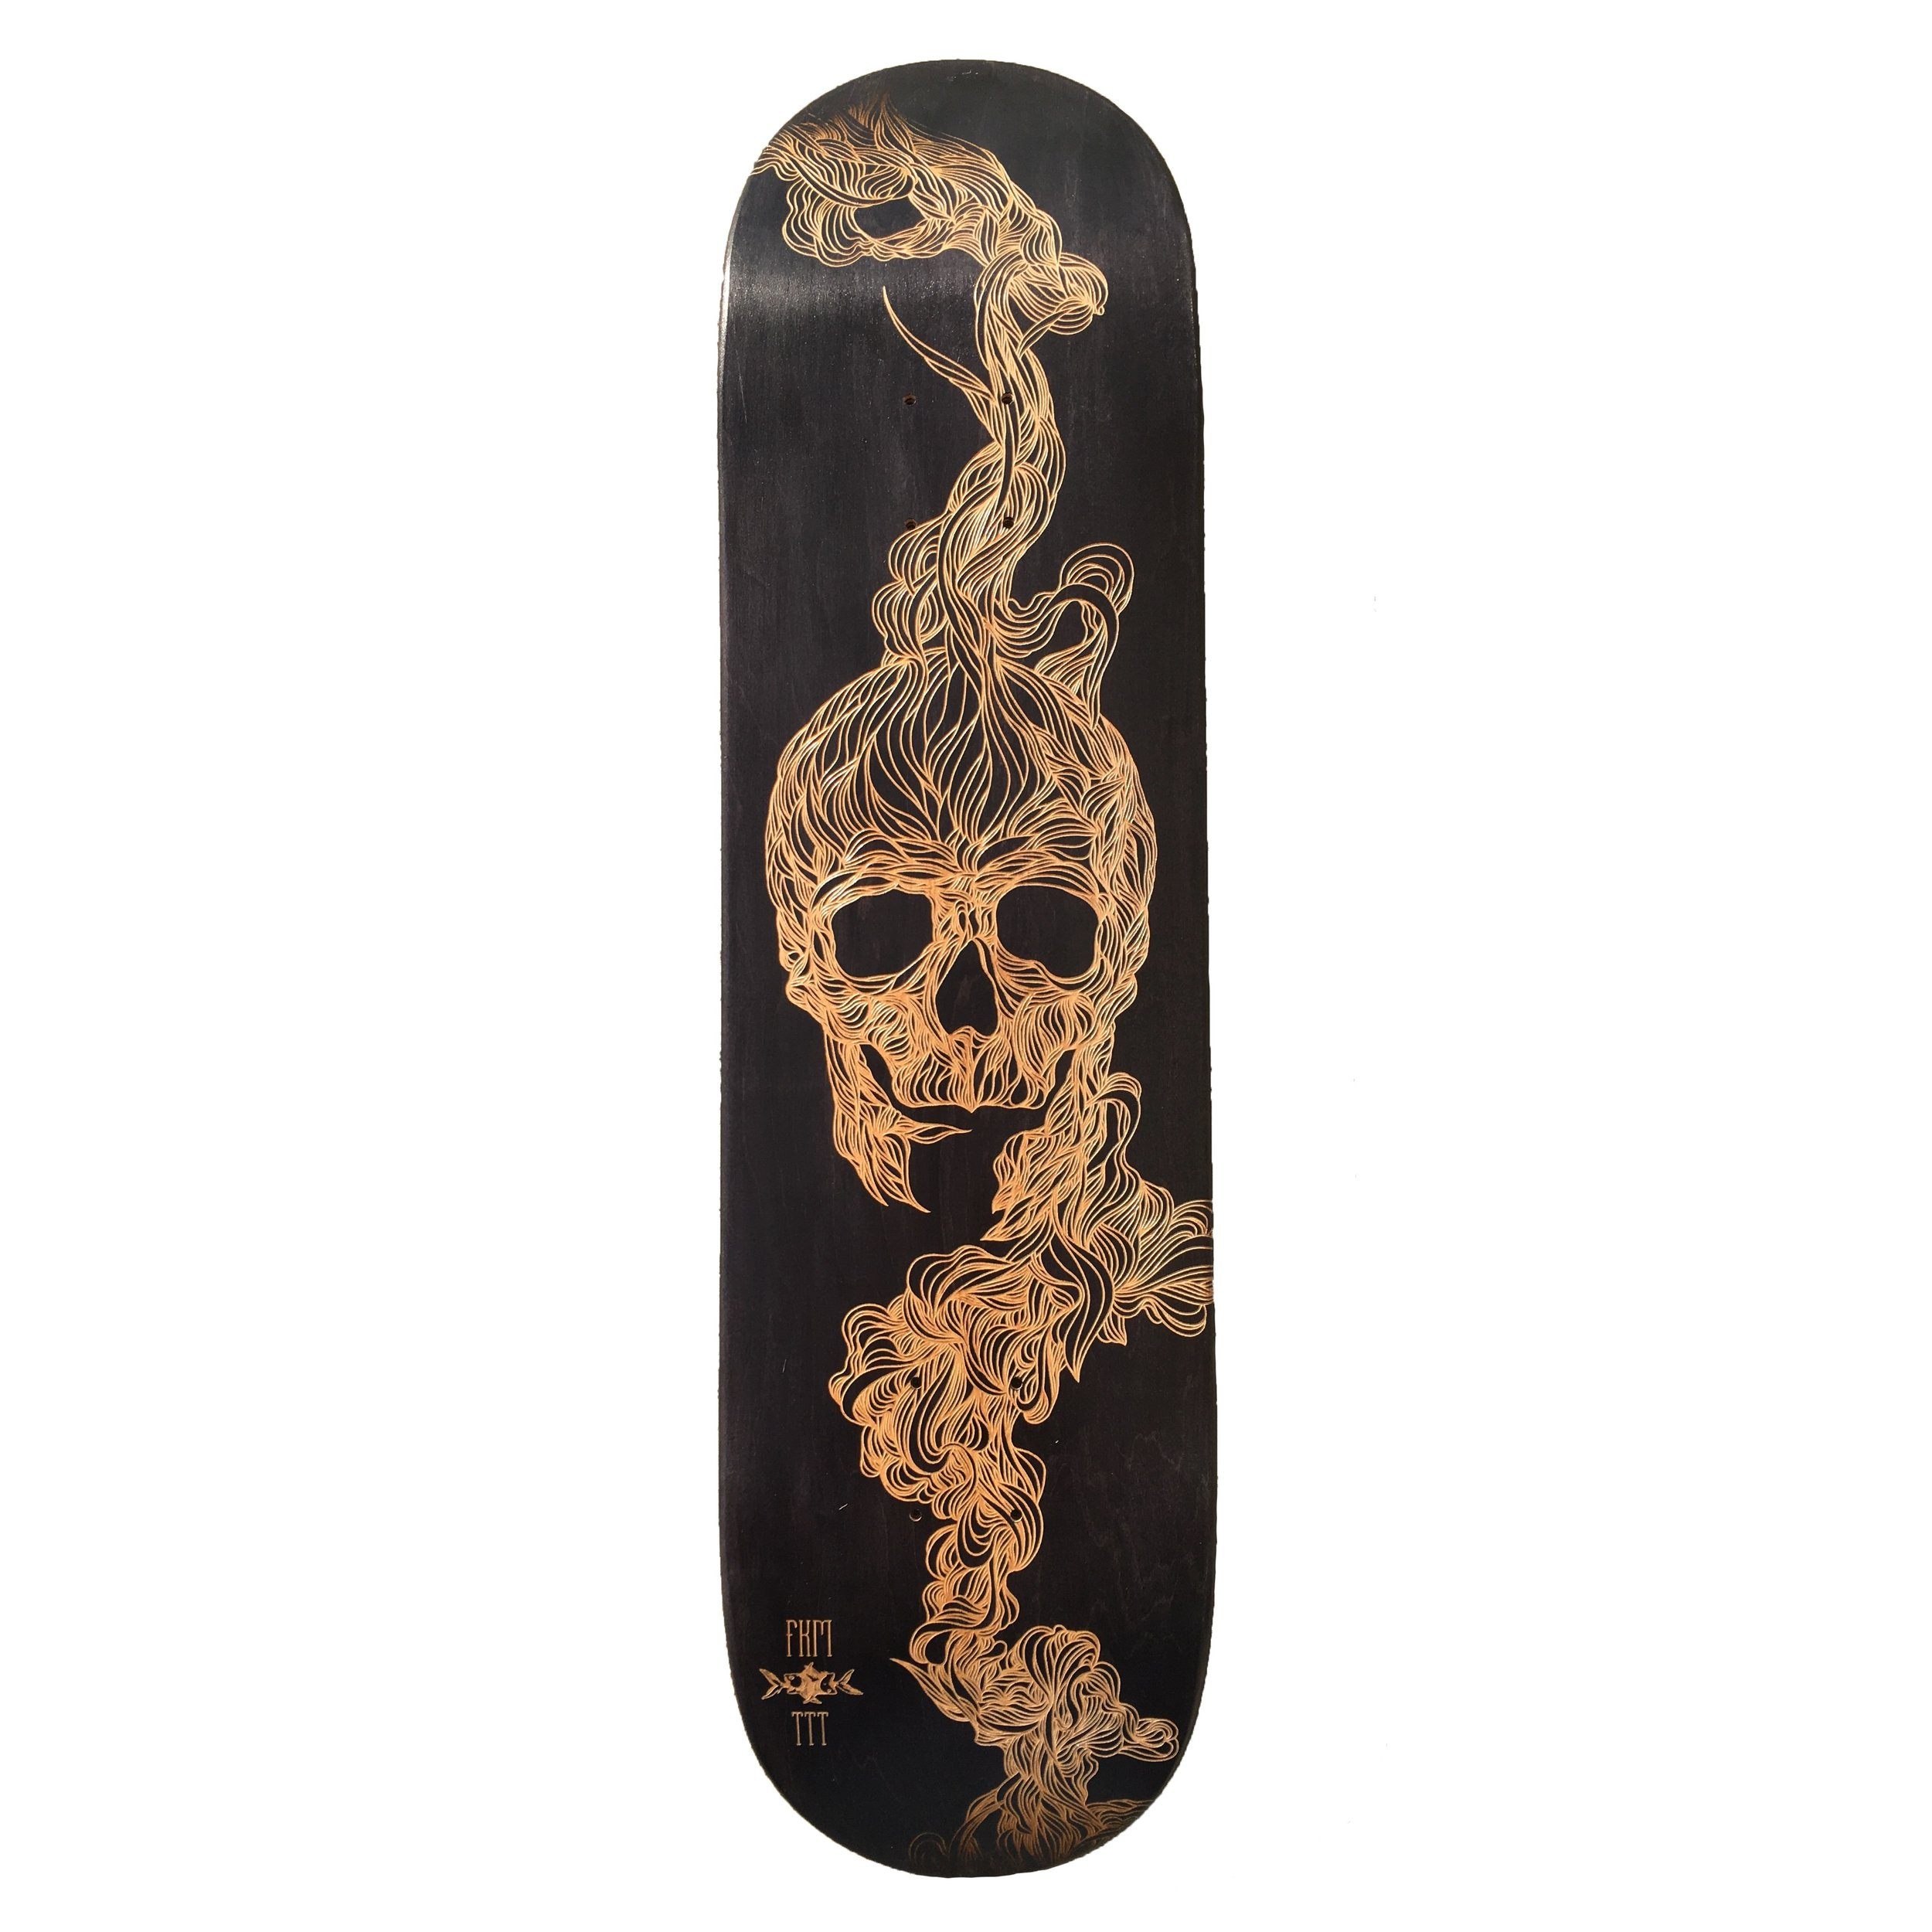 FKM tattoo skateboard collaboration 1